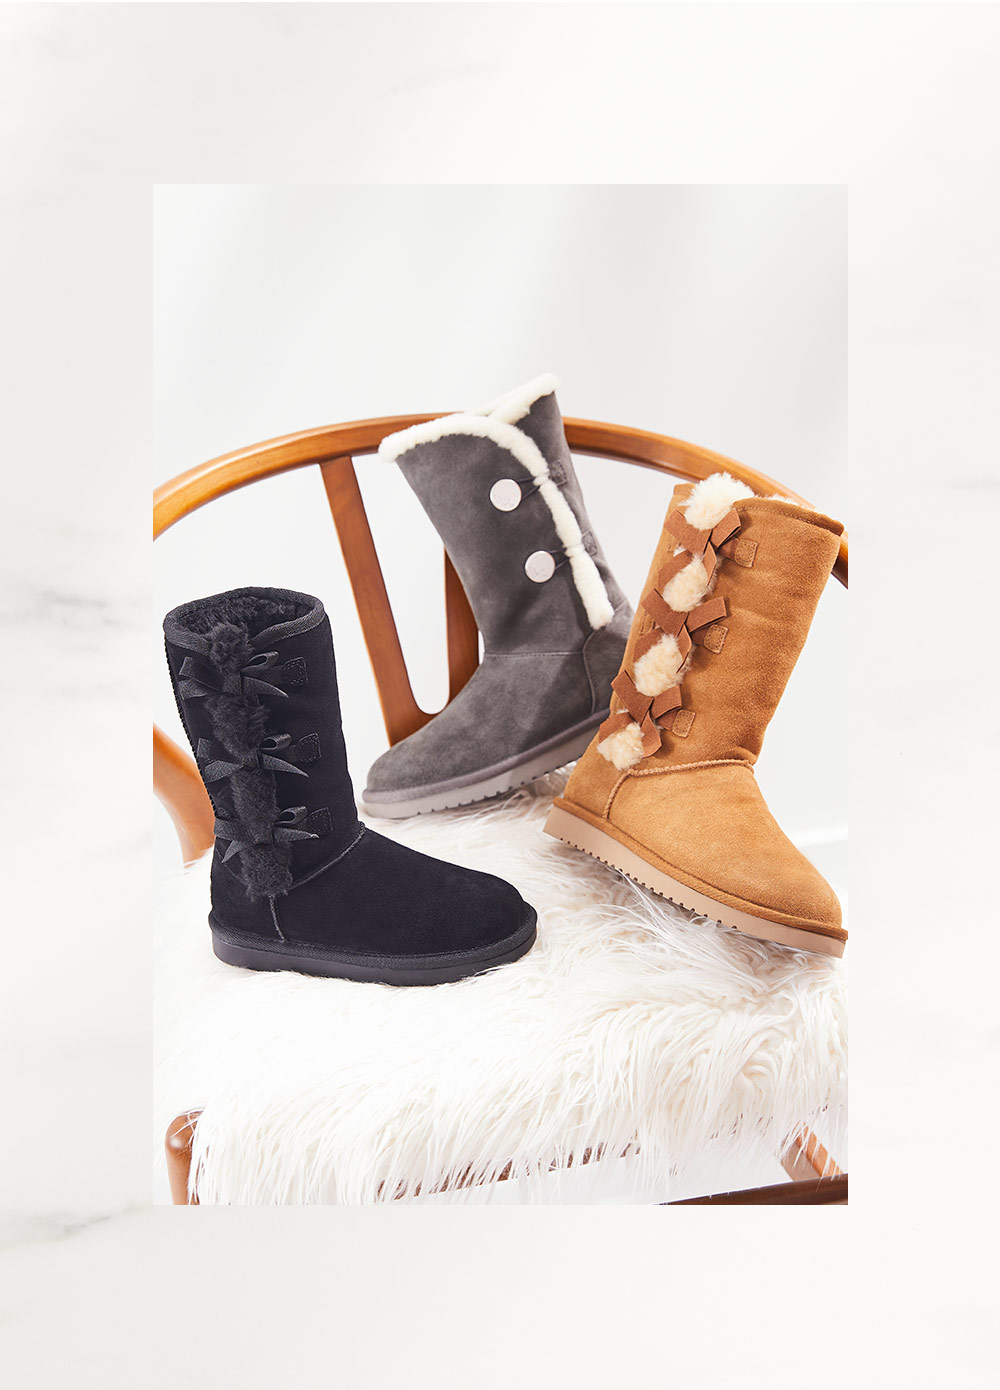 assorted fleece lined boots